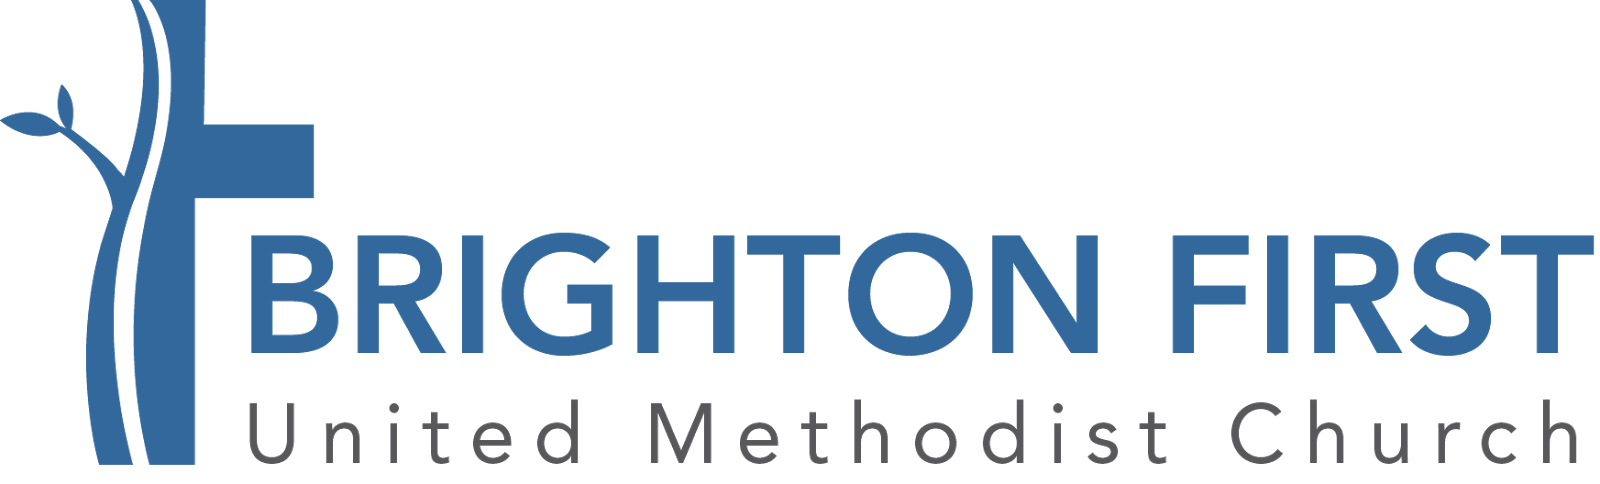 Brighton First Updates: Update on Communications Practices at ...